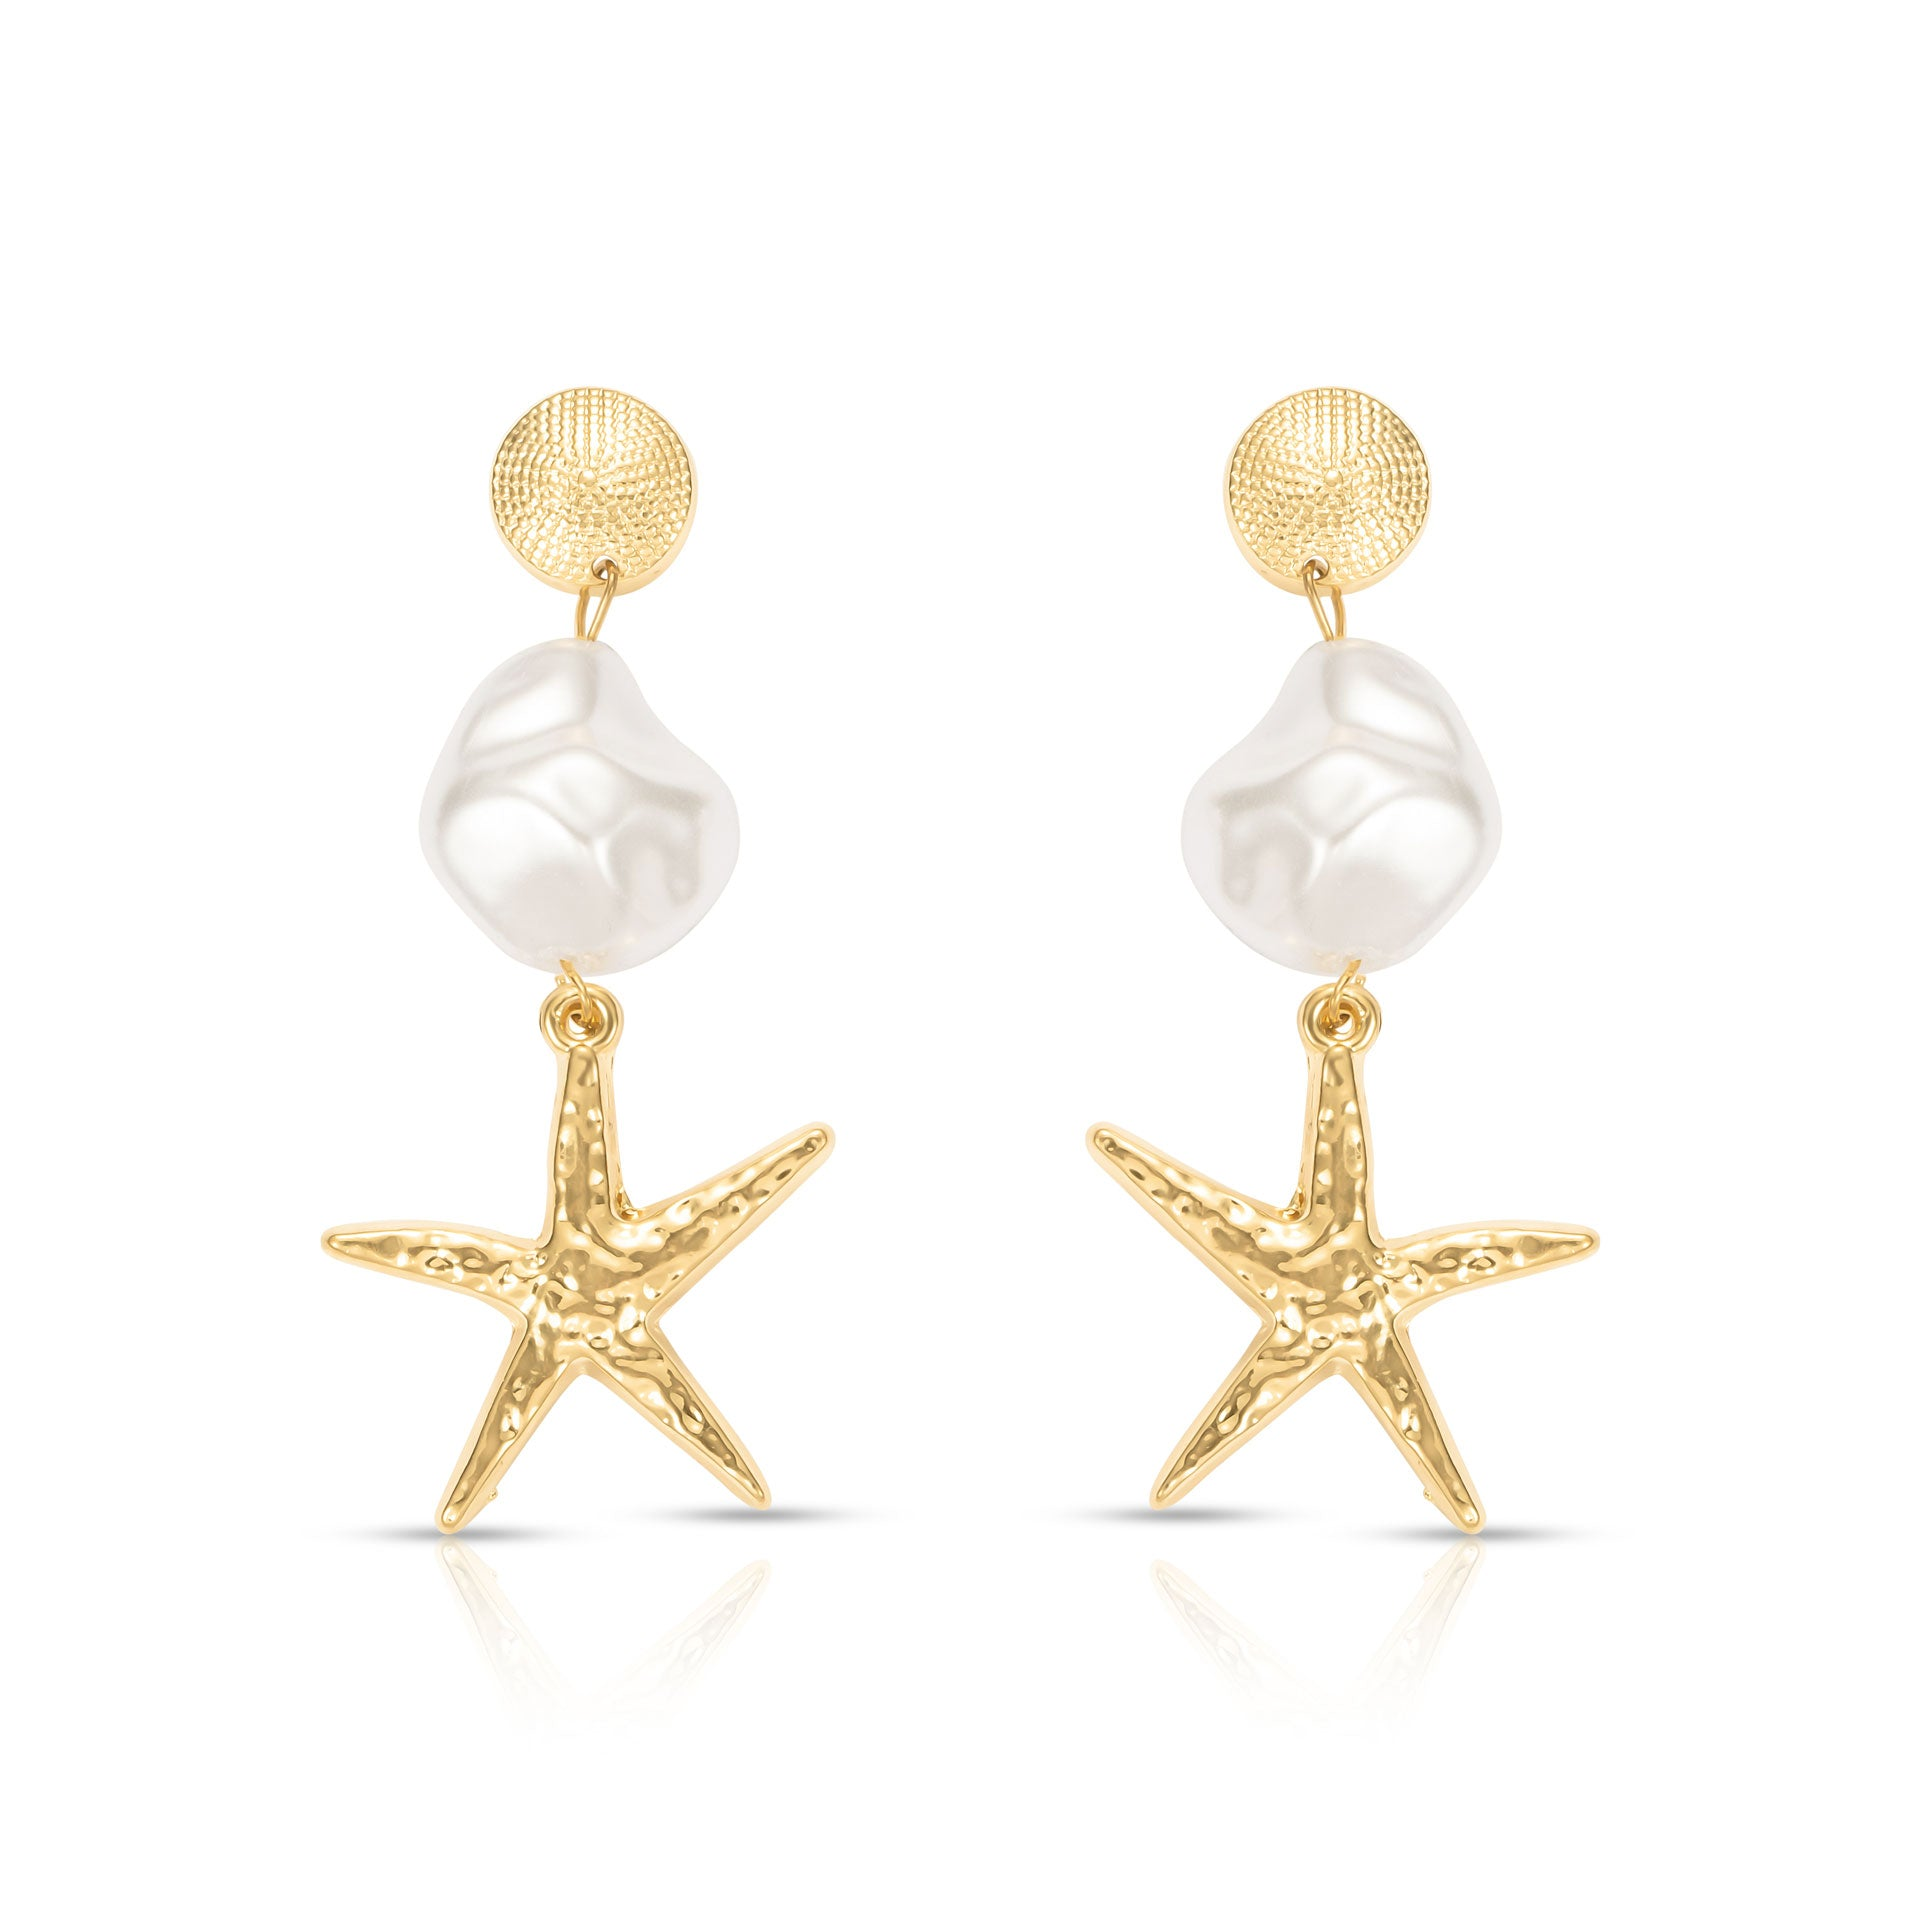 THE ARIANNA EARRINGS